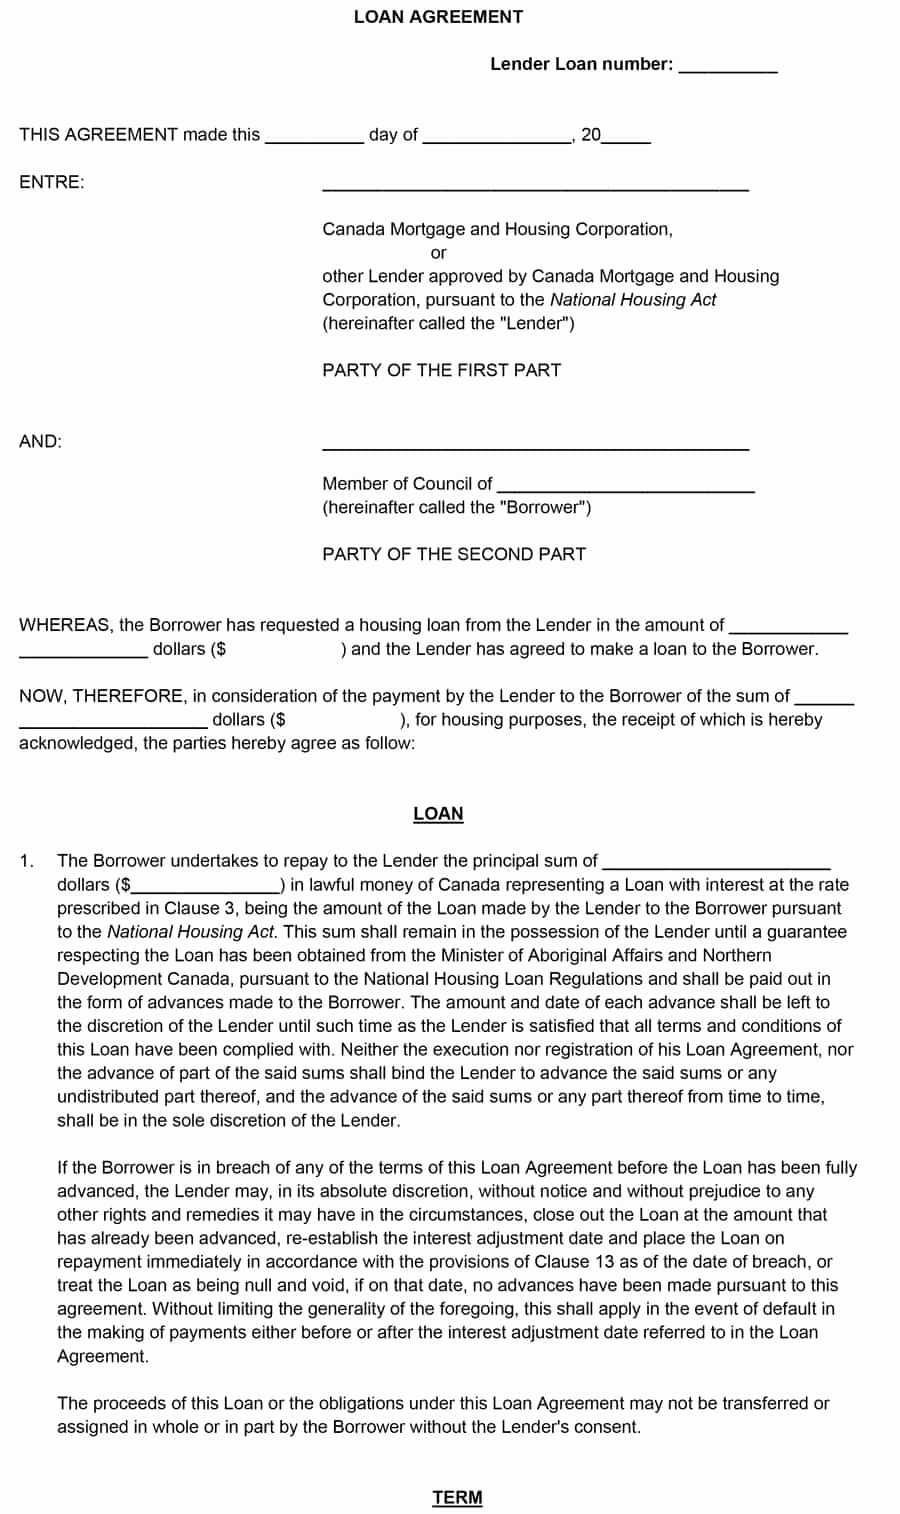 Loan Agreement Template Free Inspirational 40 Free Loan Agreement Templates [word & Pdf] Template Lab